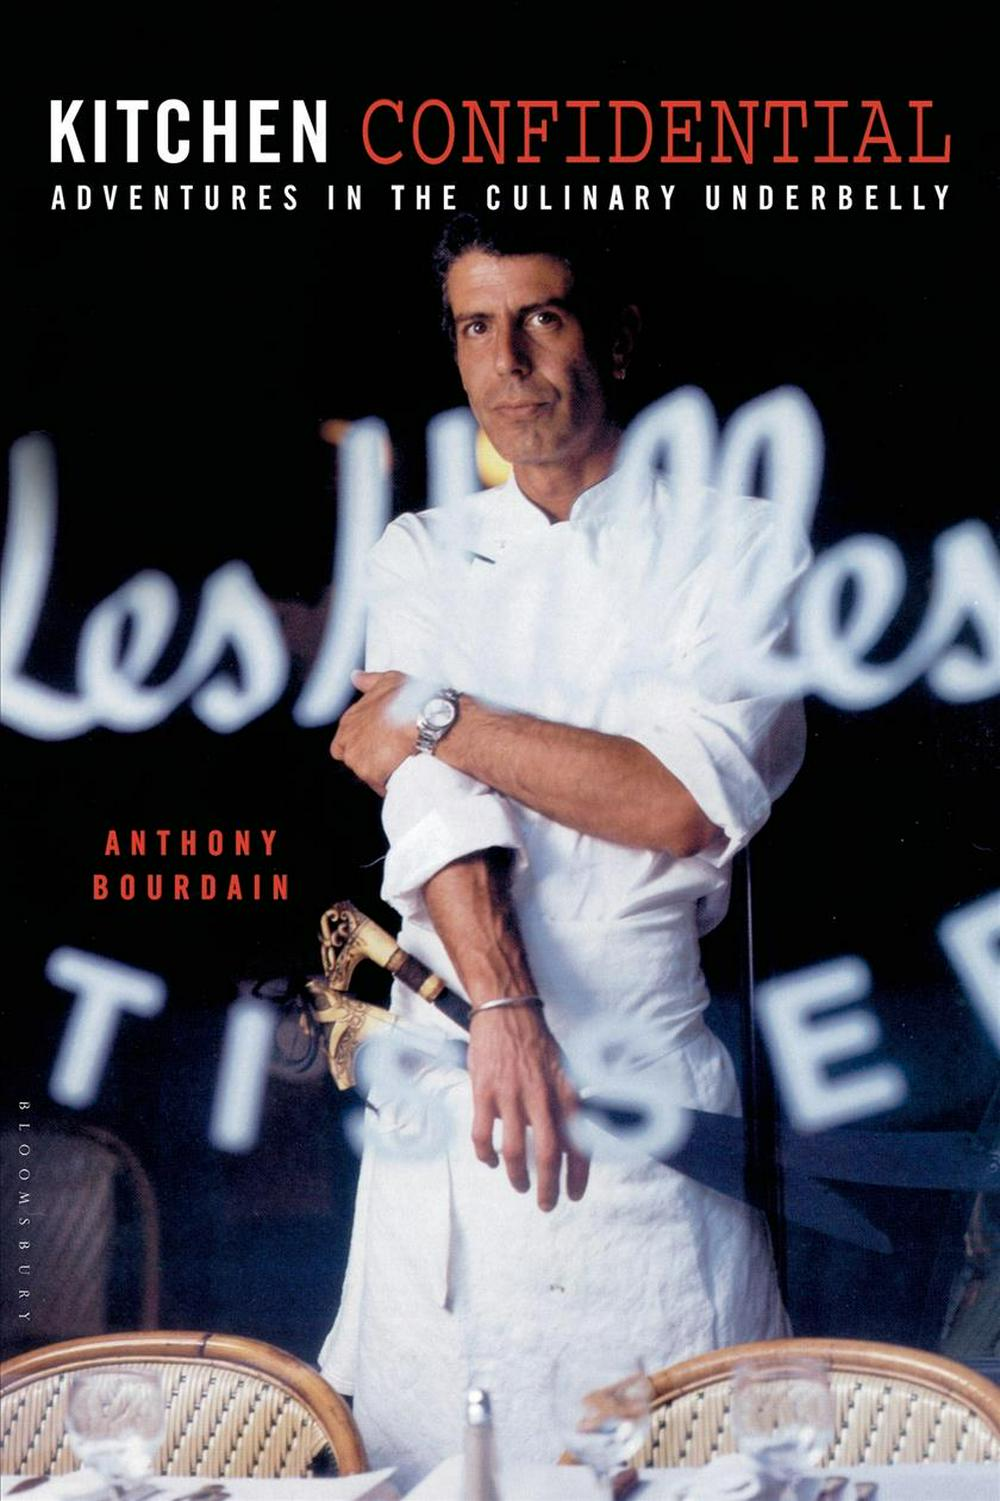 Kitchen Confidential by Anthony Bourdain, ISBN: 9781582340821